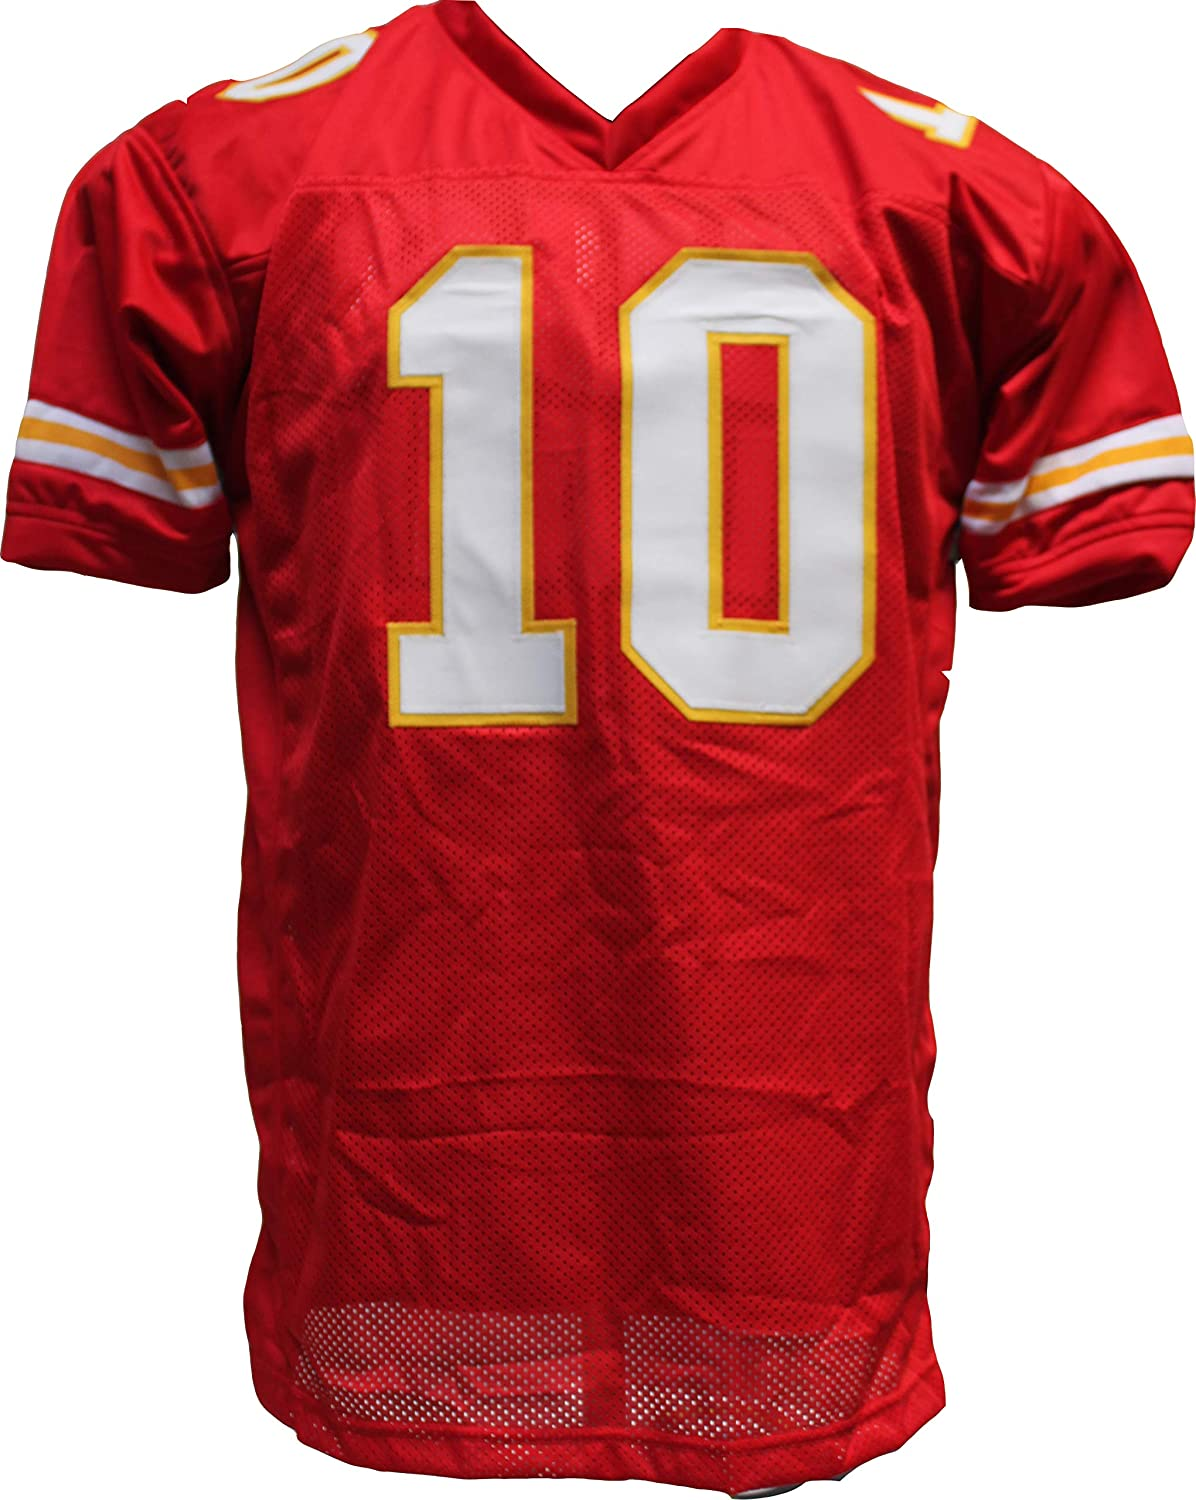 Tyreek Hill Signed Autograph Red Custom Jersey